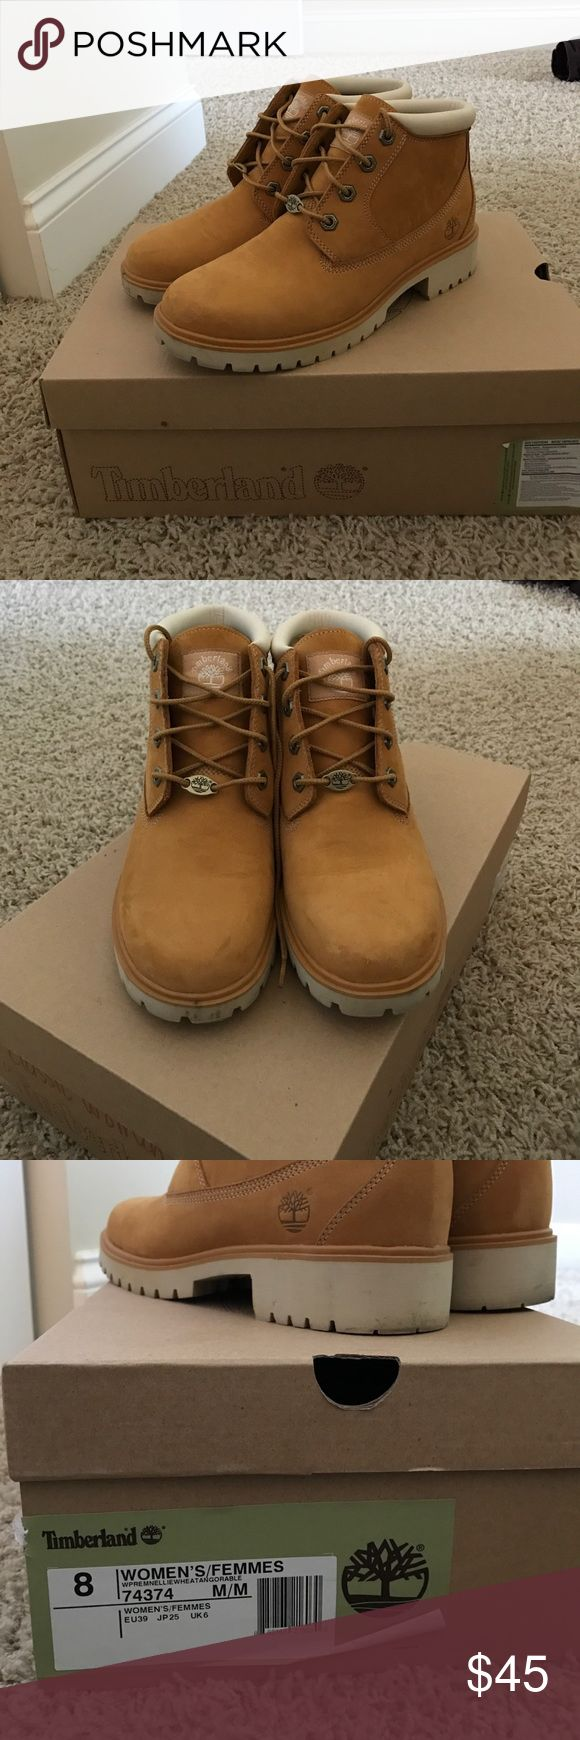 Women's Timberland Boots Size 8 women's Timberland boots. Worn a few times, shows some signs of wear but nothing major! I just don't wear them because the women's fit is thinner and I like the looks of men's Tim's instead Timberland Shoes Ankle Boots & Booties